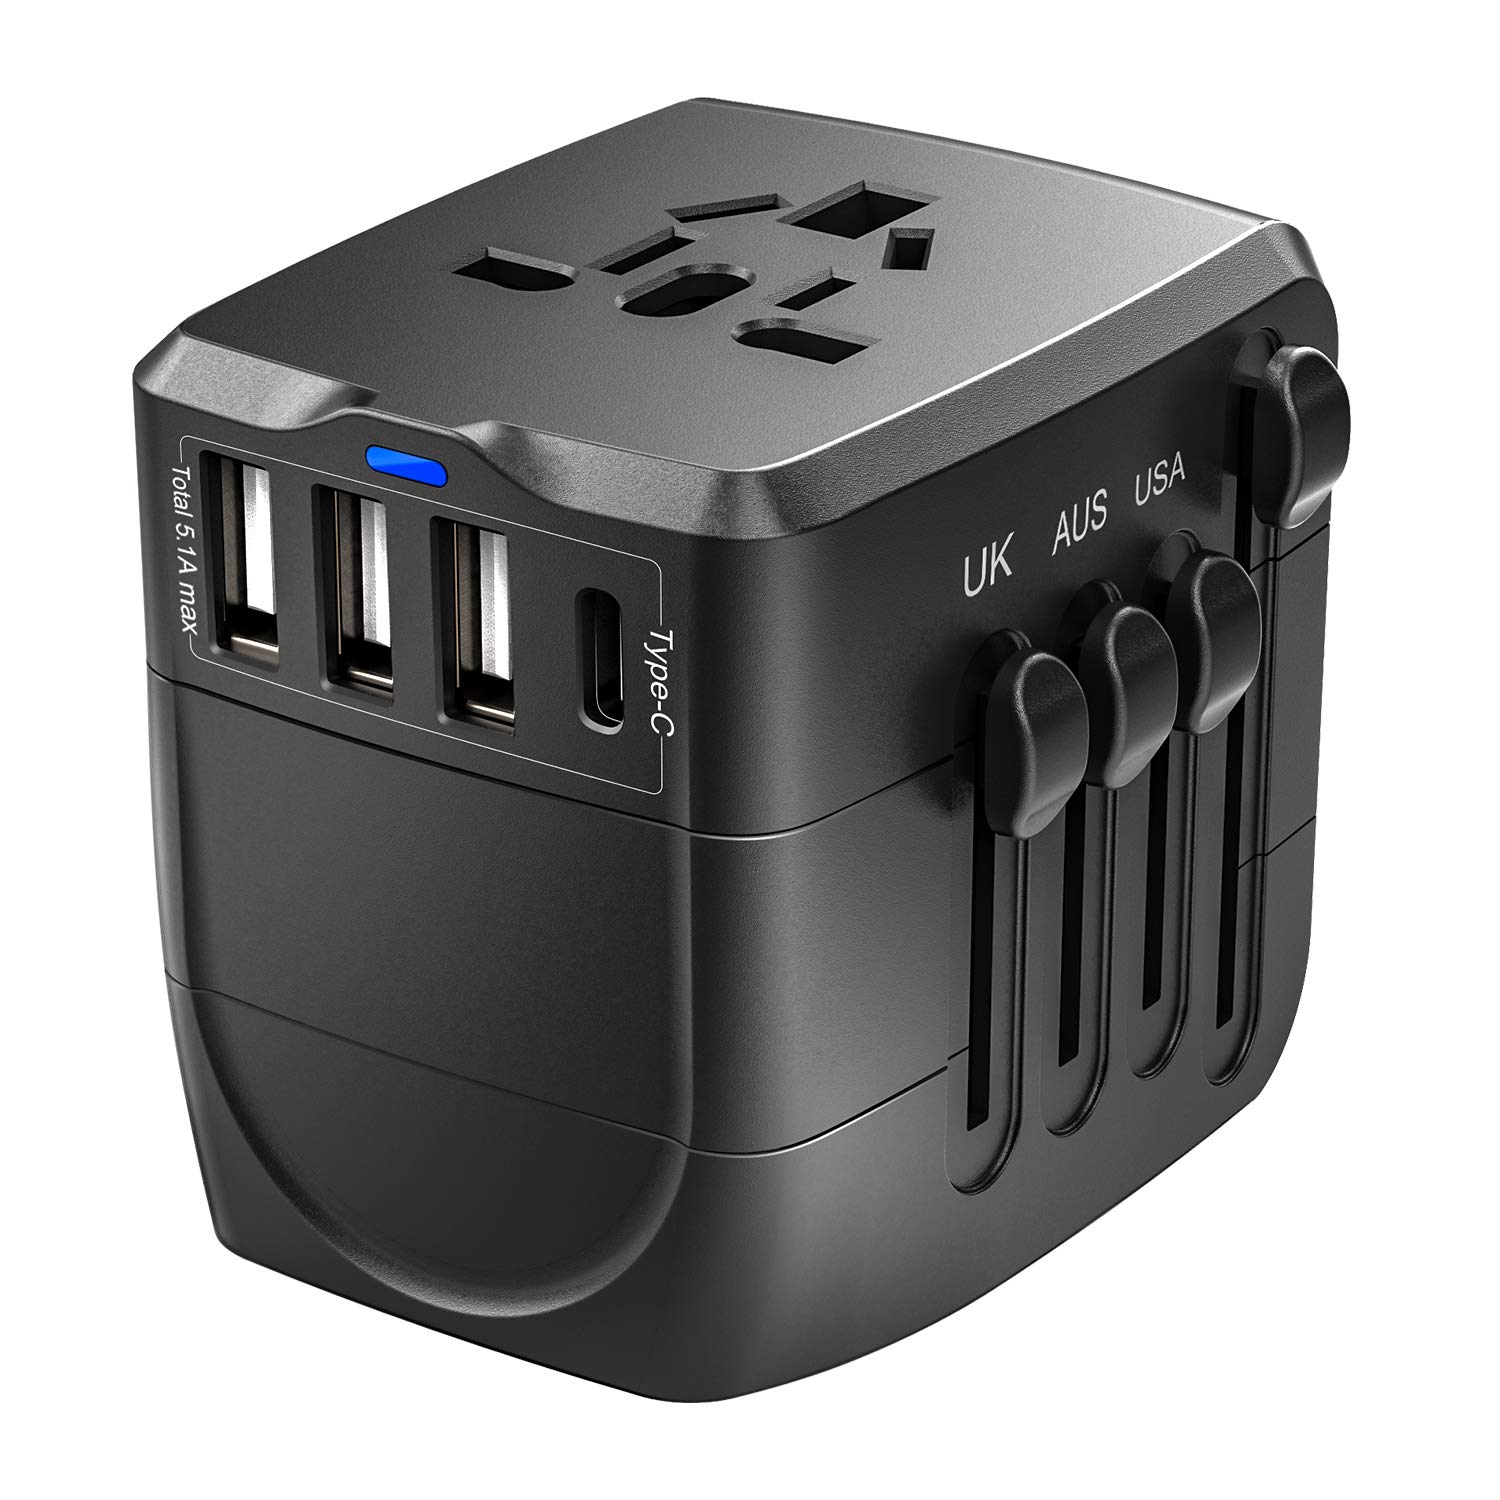 Travel Adapter, 2400W International Power Adapter, Universal 1 Smart Type-C & 3 USB All in One Power Plug Adapter for High Power Appliances for UK, EU, AU, US, Over 150 Countries, Black